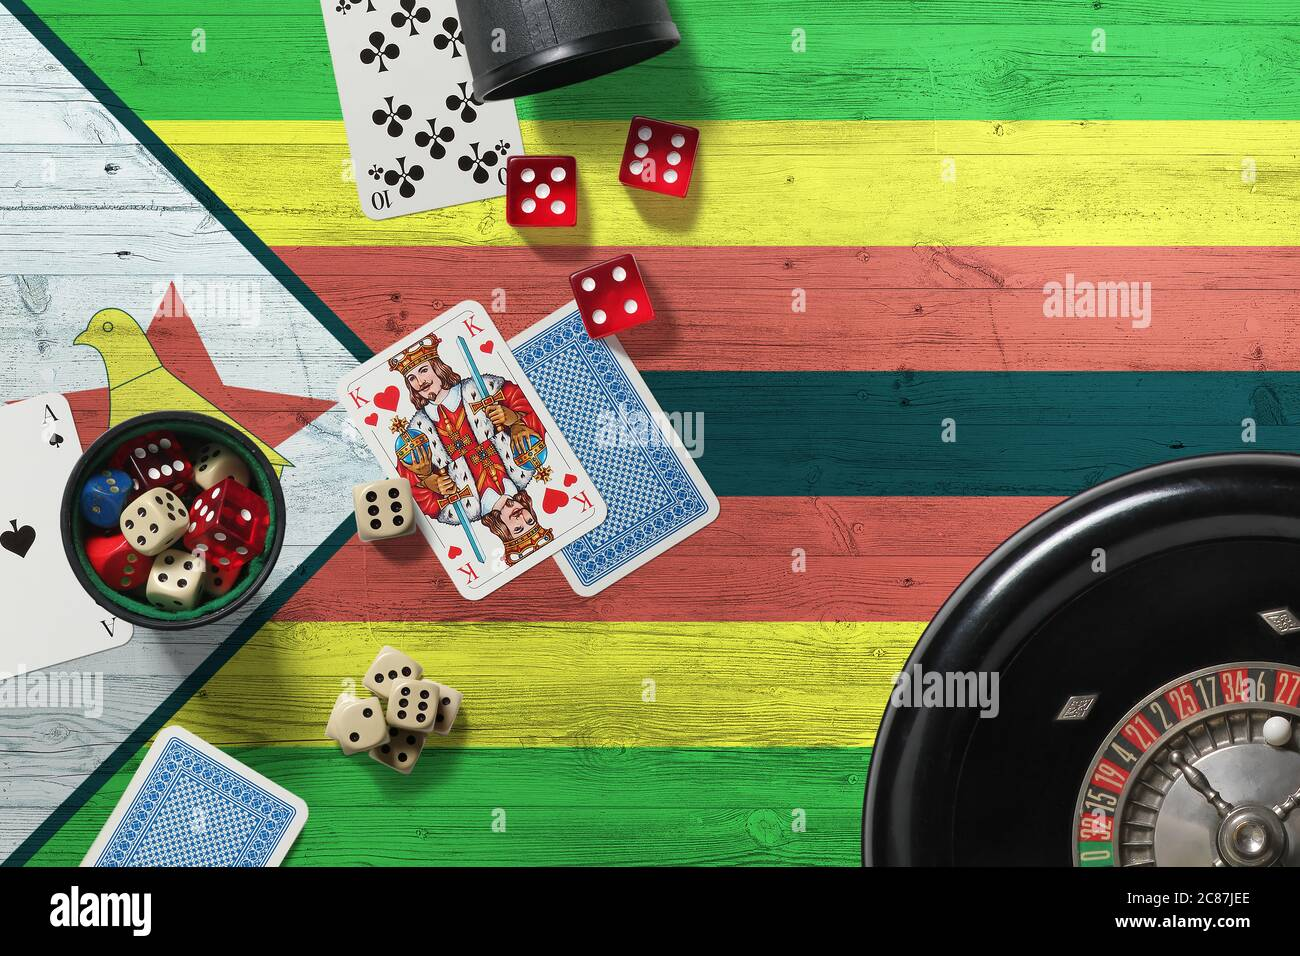 Betting world zimbabwe flag betting for the tie in jeopardy